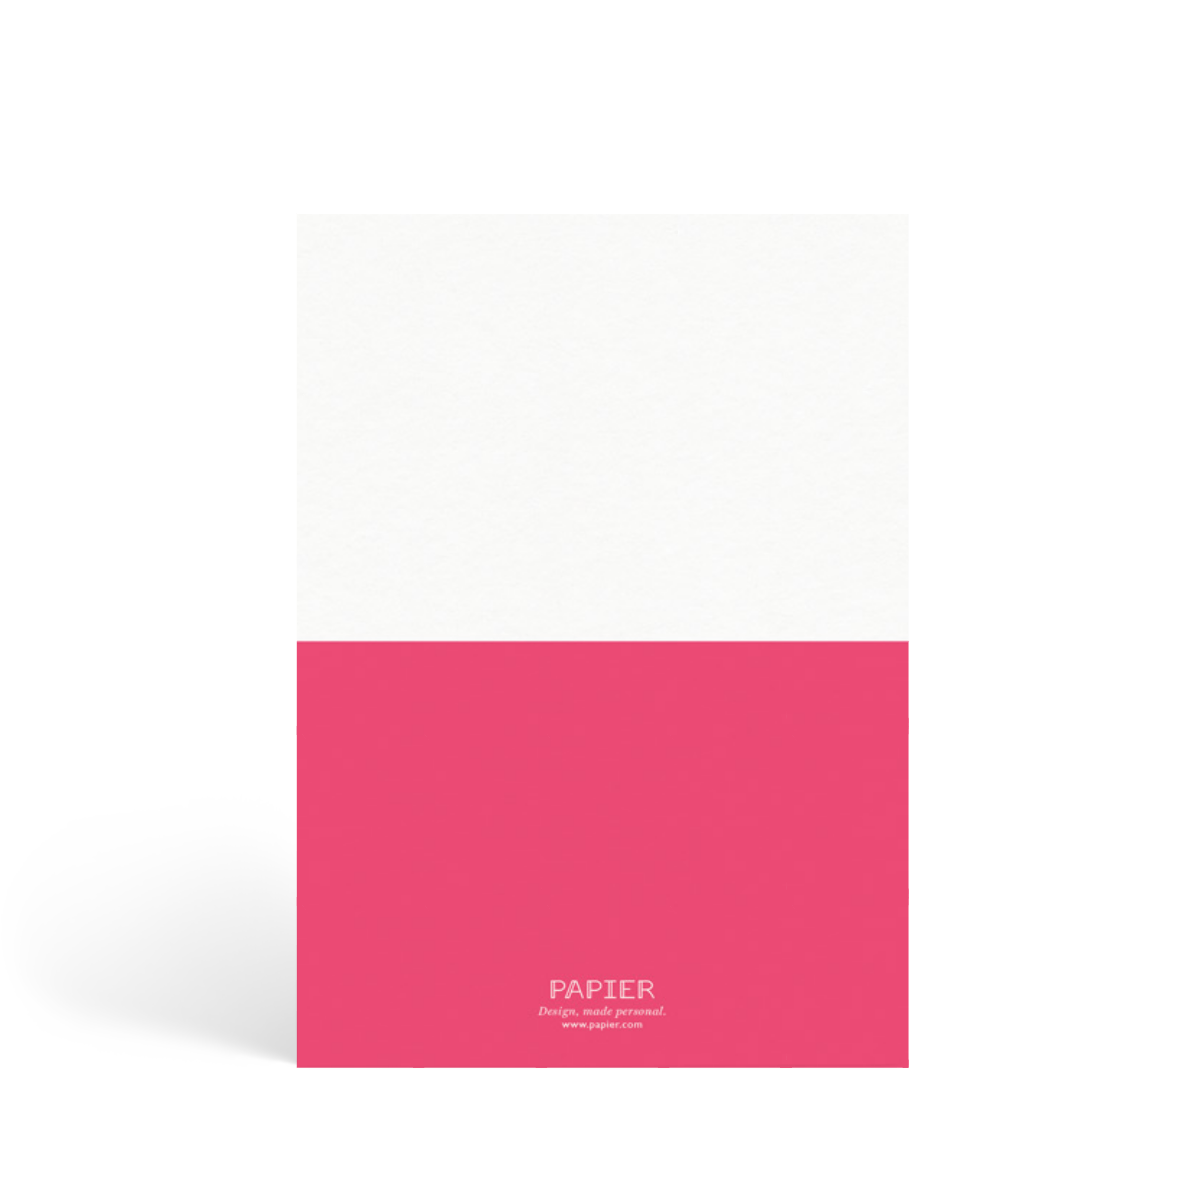 Https%3a%2f%2fwww.papier.com%2fproduct image%2f51856%2f5%2fdemi hot pink 12682 back 1541001908.png?ixlib=rb 1.1